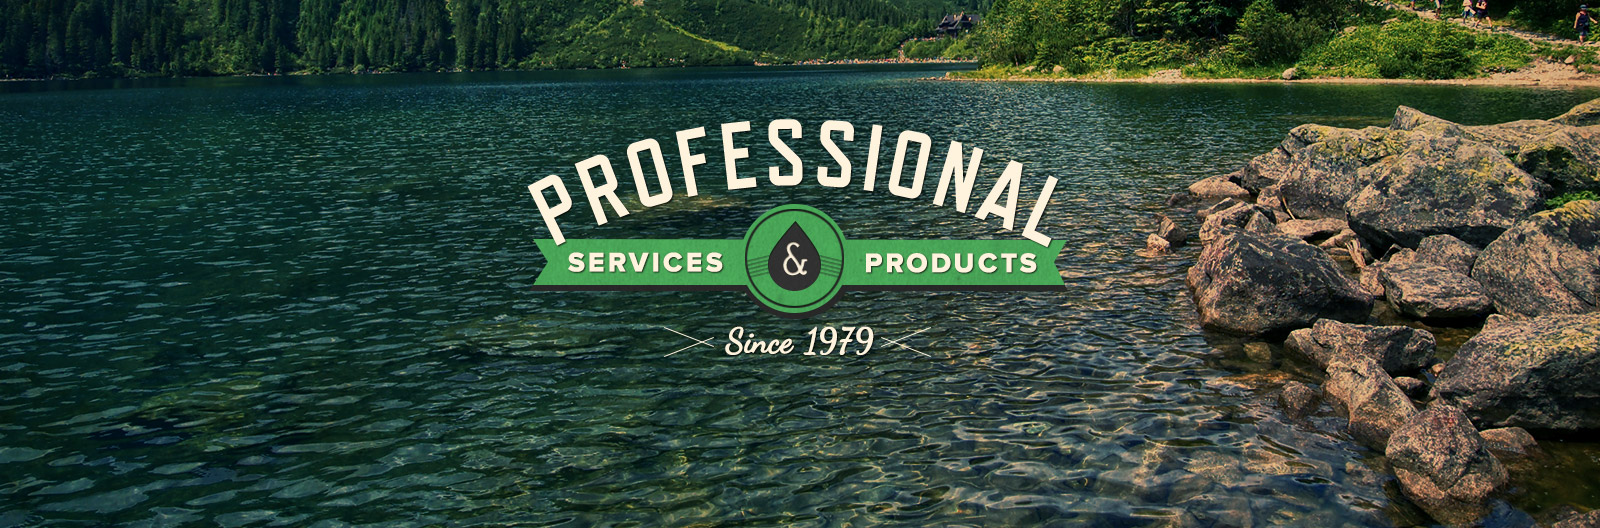 Professional Services & Products